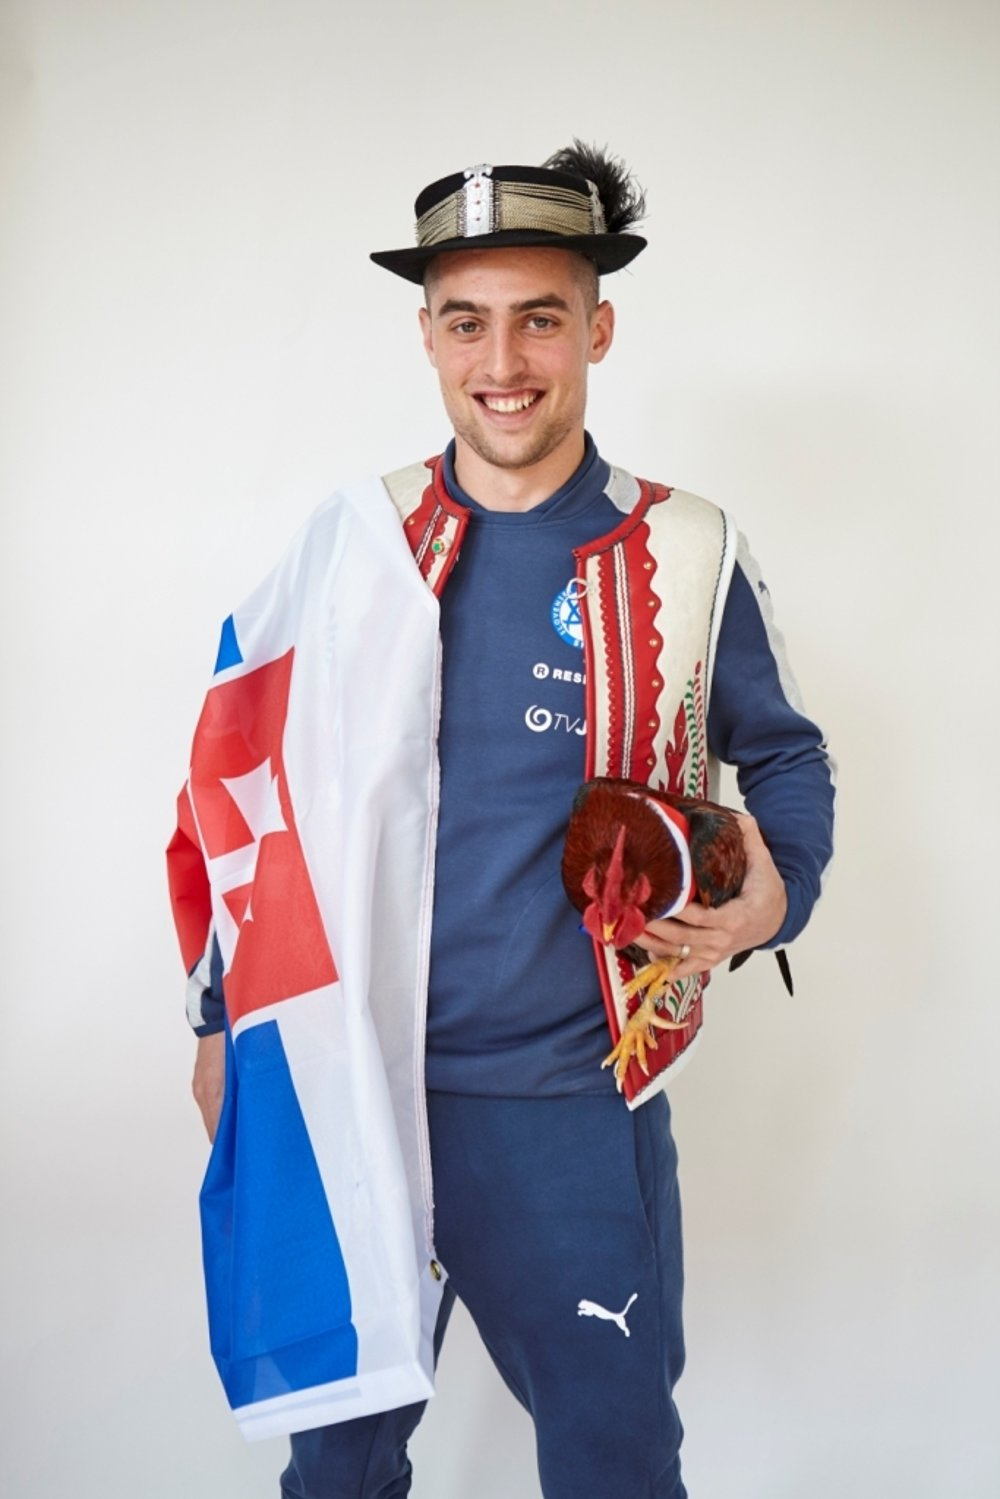 Róbert Mak posed with the rooster and the Slovak flag.